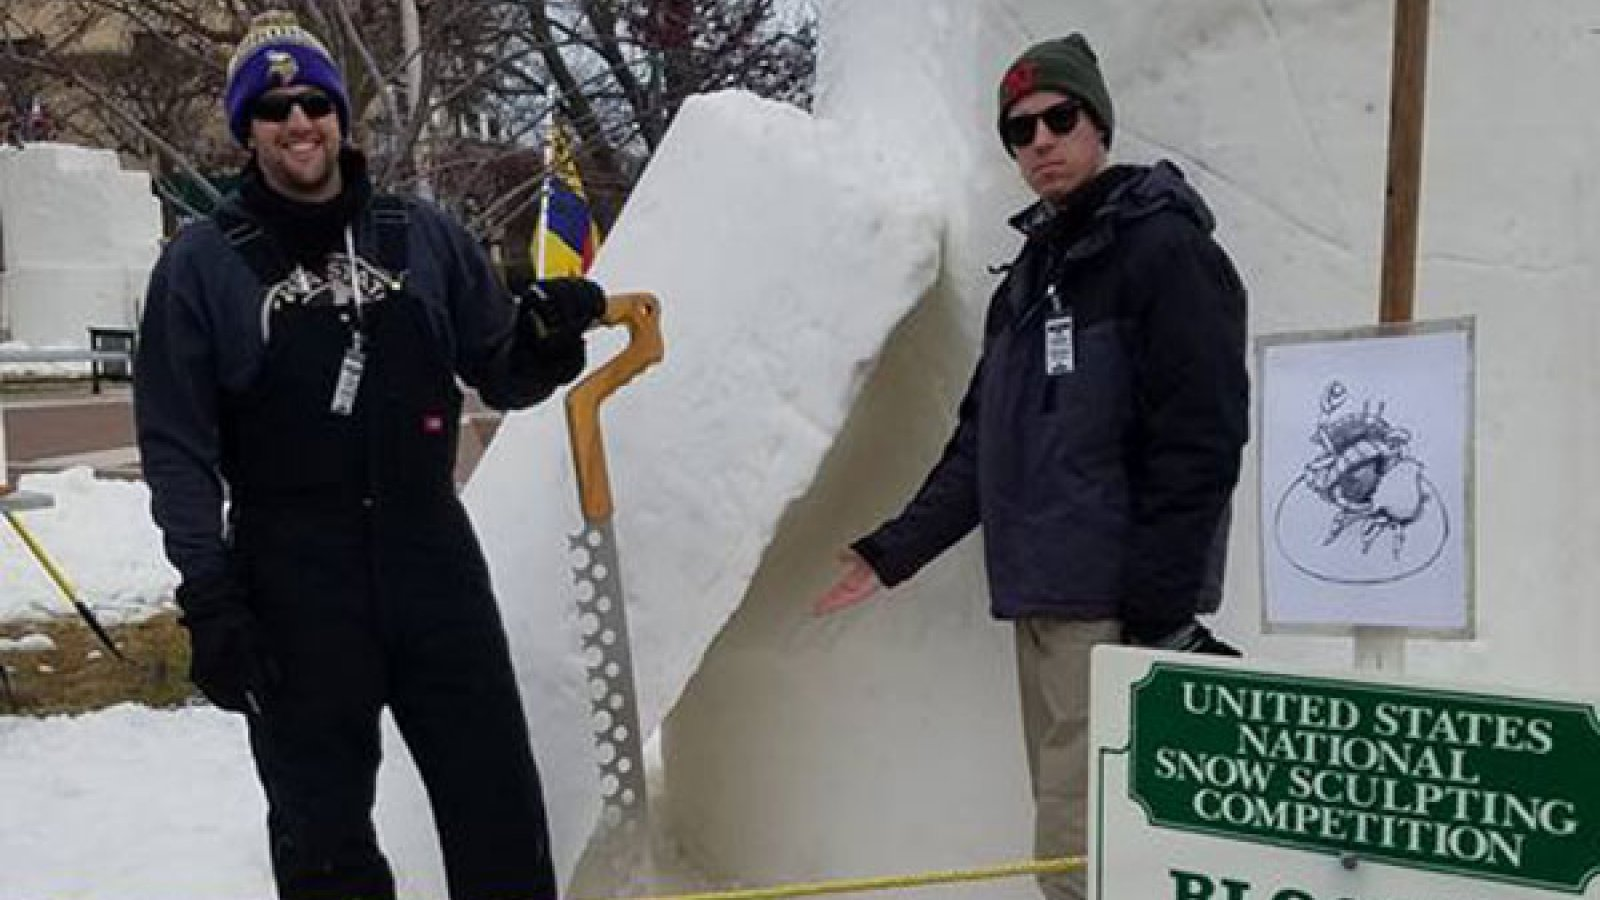 Civil engineering student Taylor Seeley (right) and Jason Perreault begin work on their 9-foot cylinder of snow on Wednesday in Lake Geneva, Wisconsin.